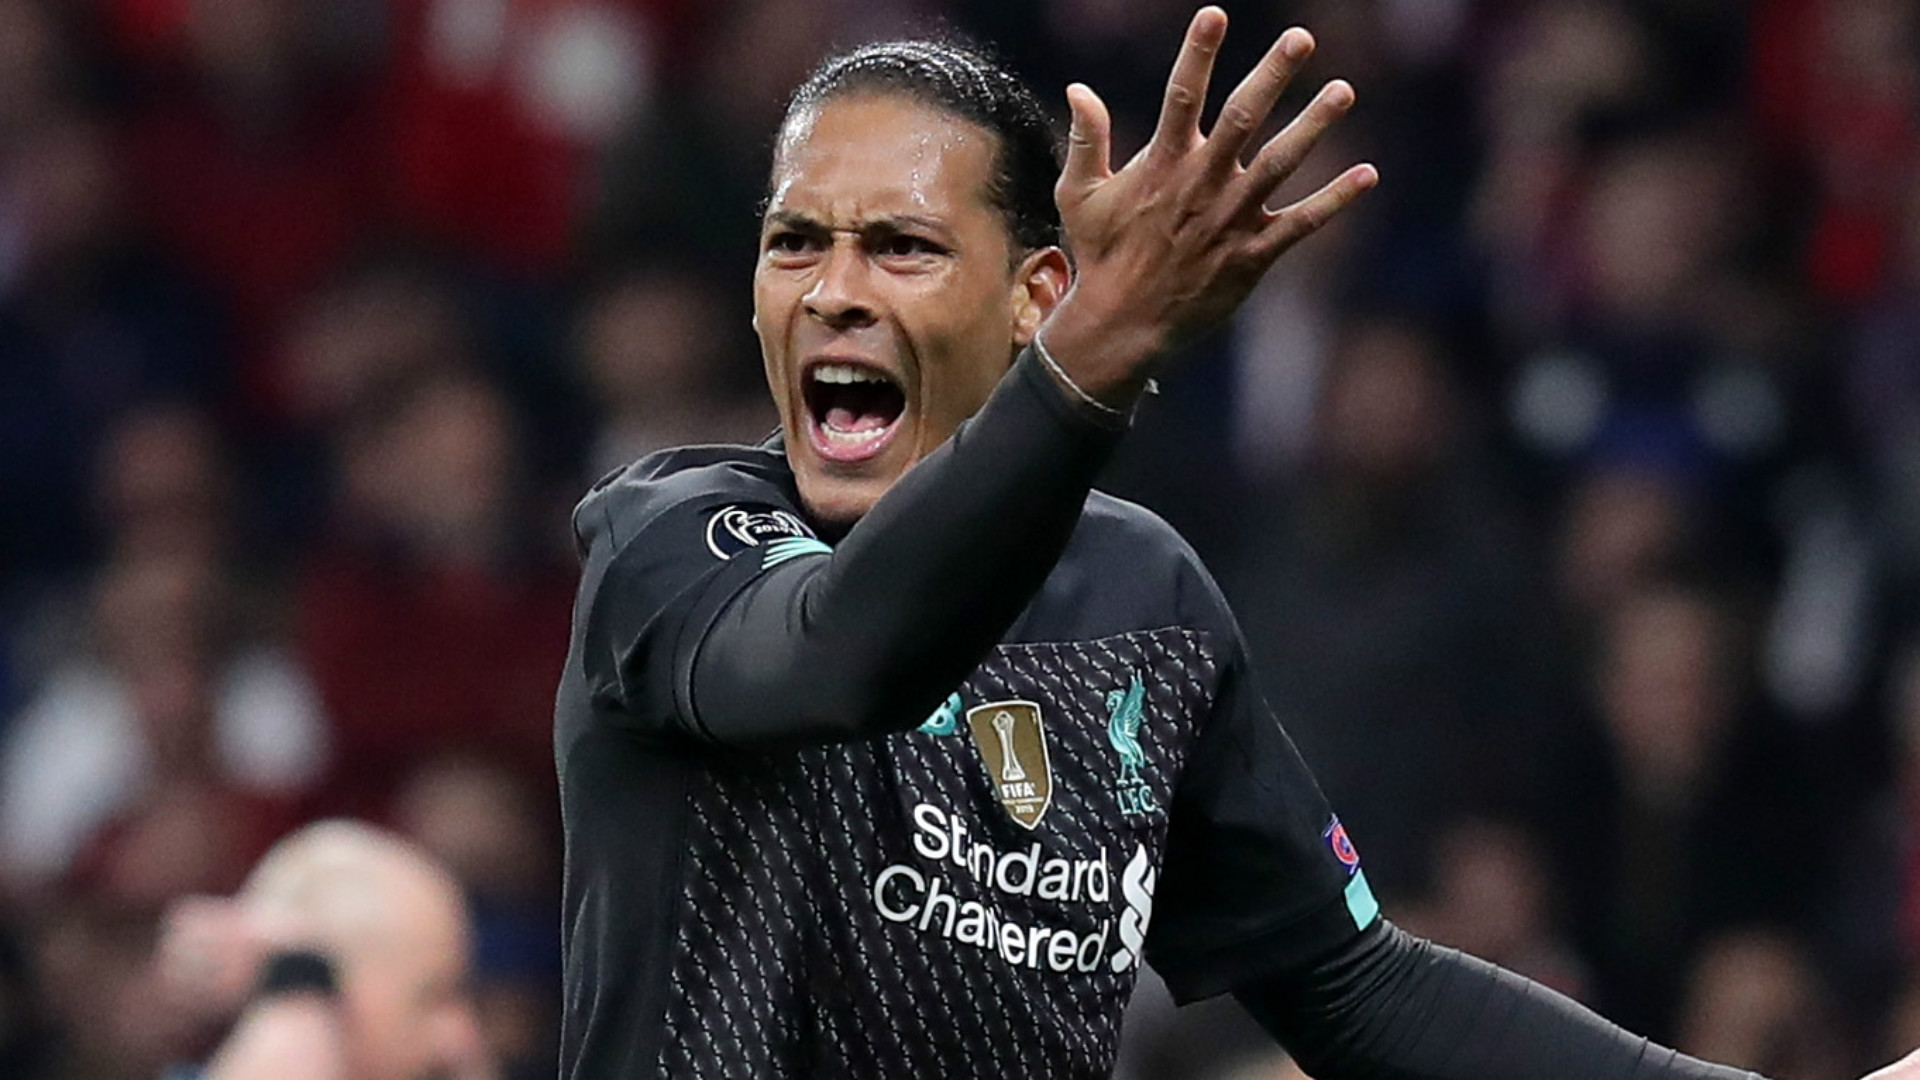 Van Dijk sounds ominous warning to rivals as Liverpool star claims he can get even better